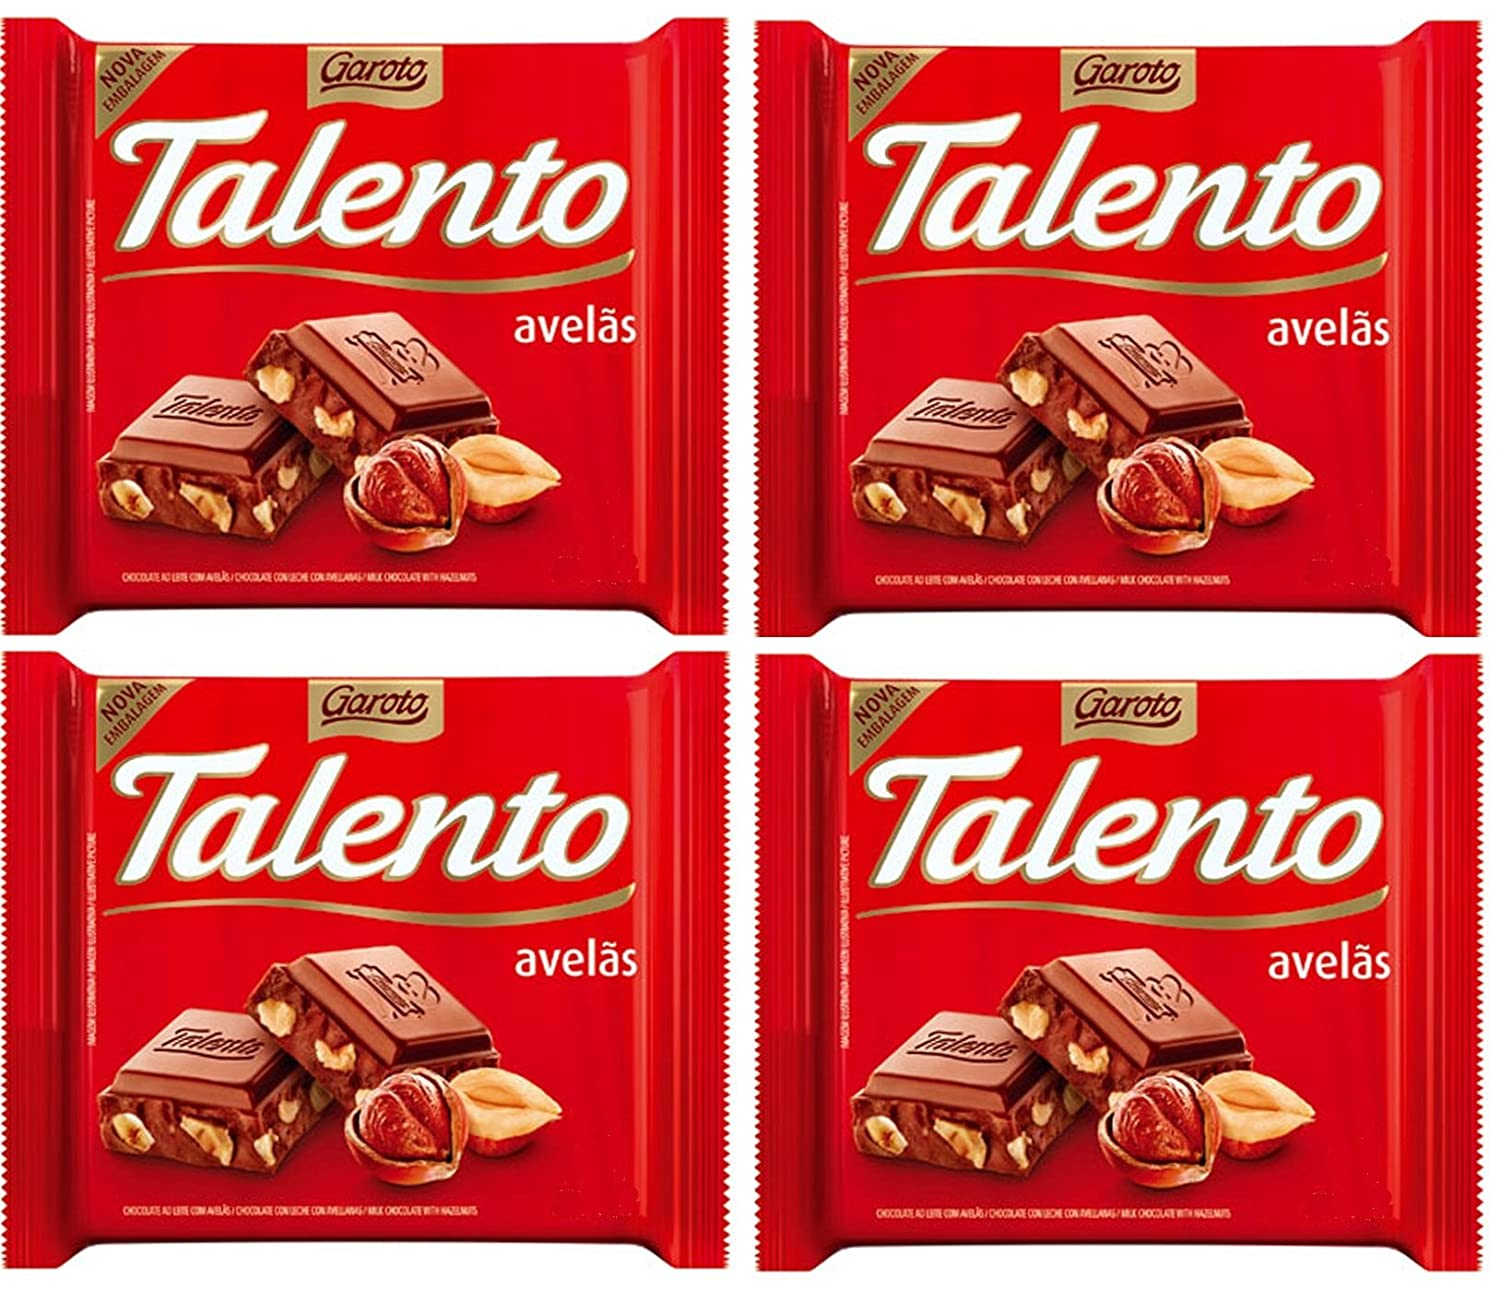 Amazon.com : GAROTO Talento Chocolate 90 gr. each - PACK of 4. (Chocolate Ao Leite com Avelas, 4 Pack) : Grocery & Gourmet Food